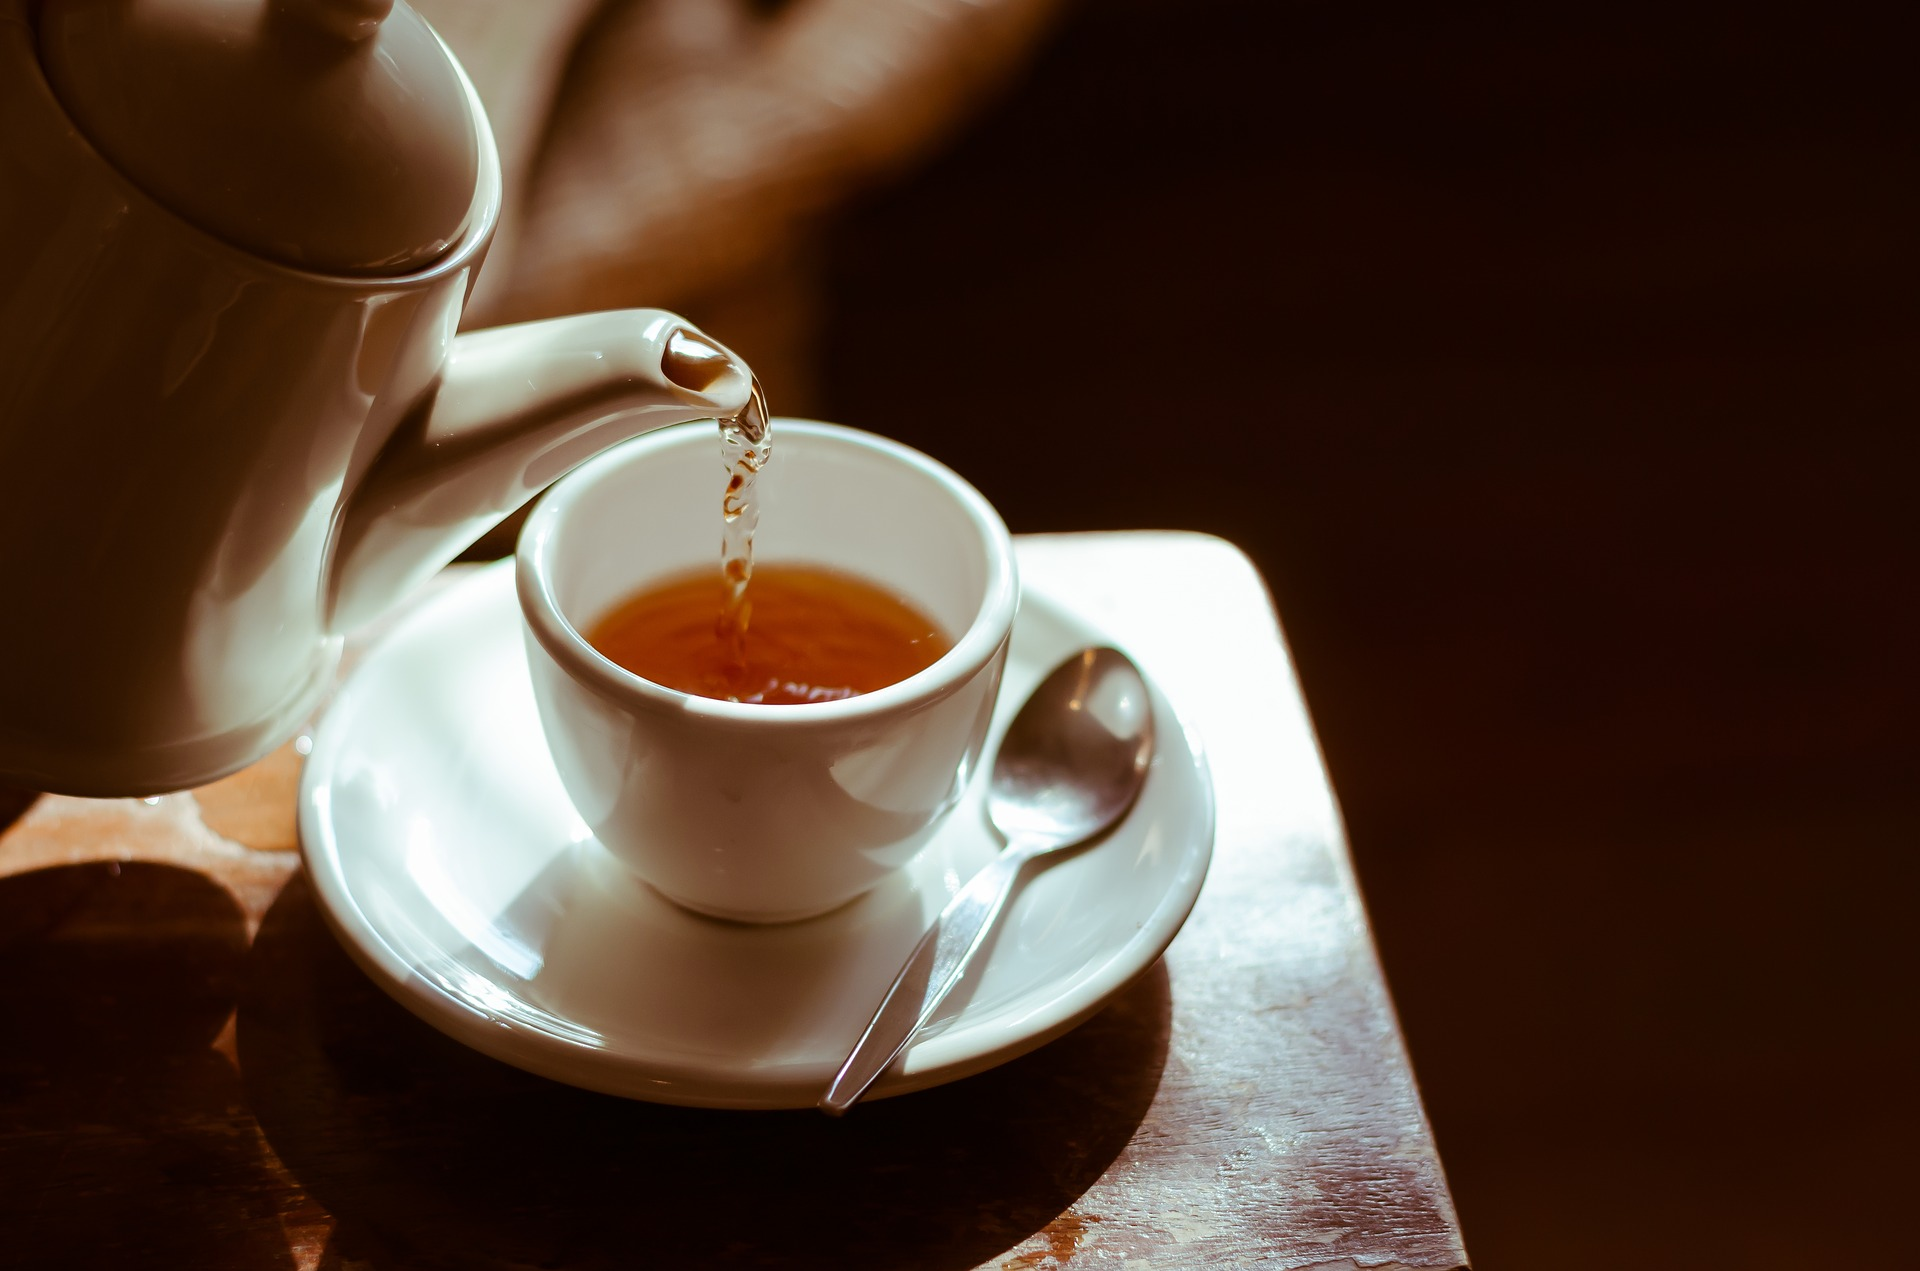 Discussion on this topic: What's Your Cup Of Tea 5 Miracle , whats-your-cup-of-tea-5-miracle/